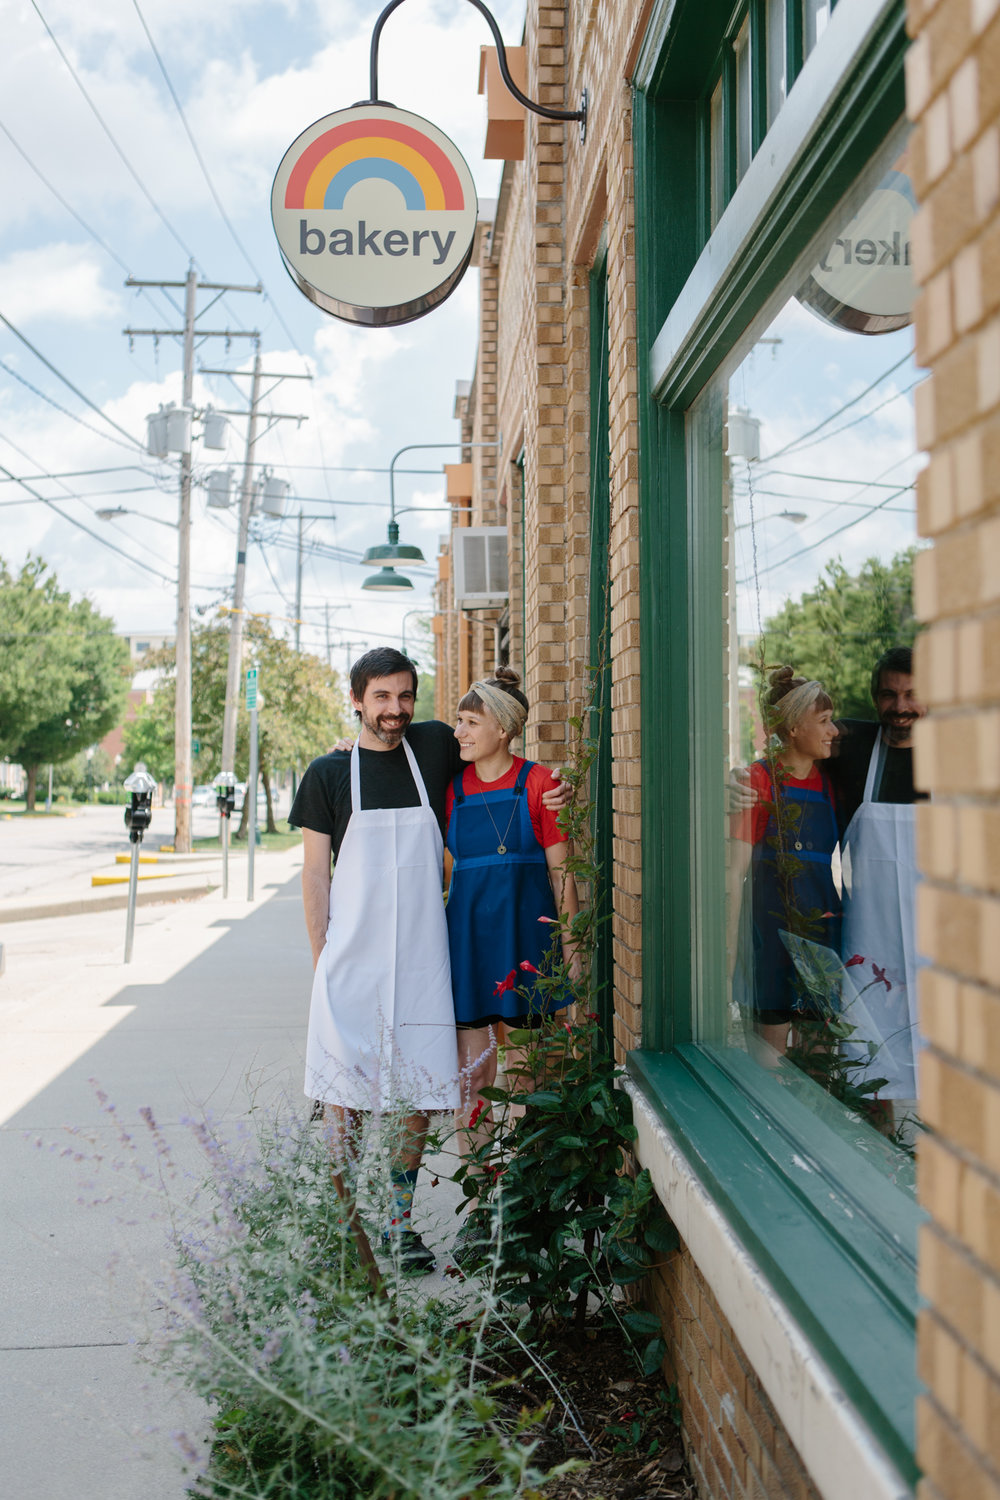 Photo of Rainbow Bakery's owners in Bloomington, Indiana.